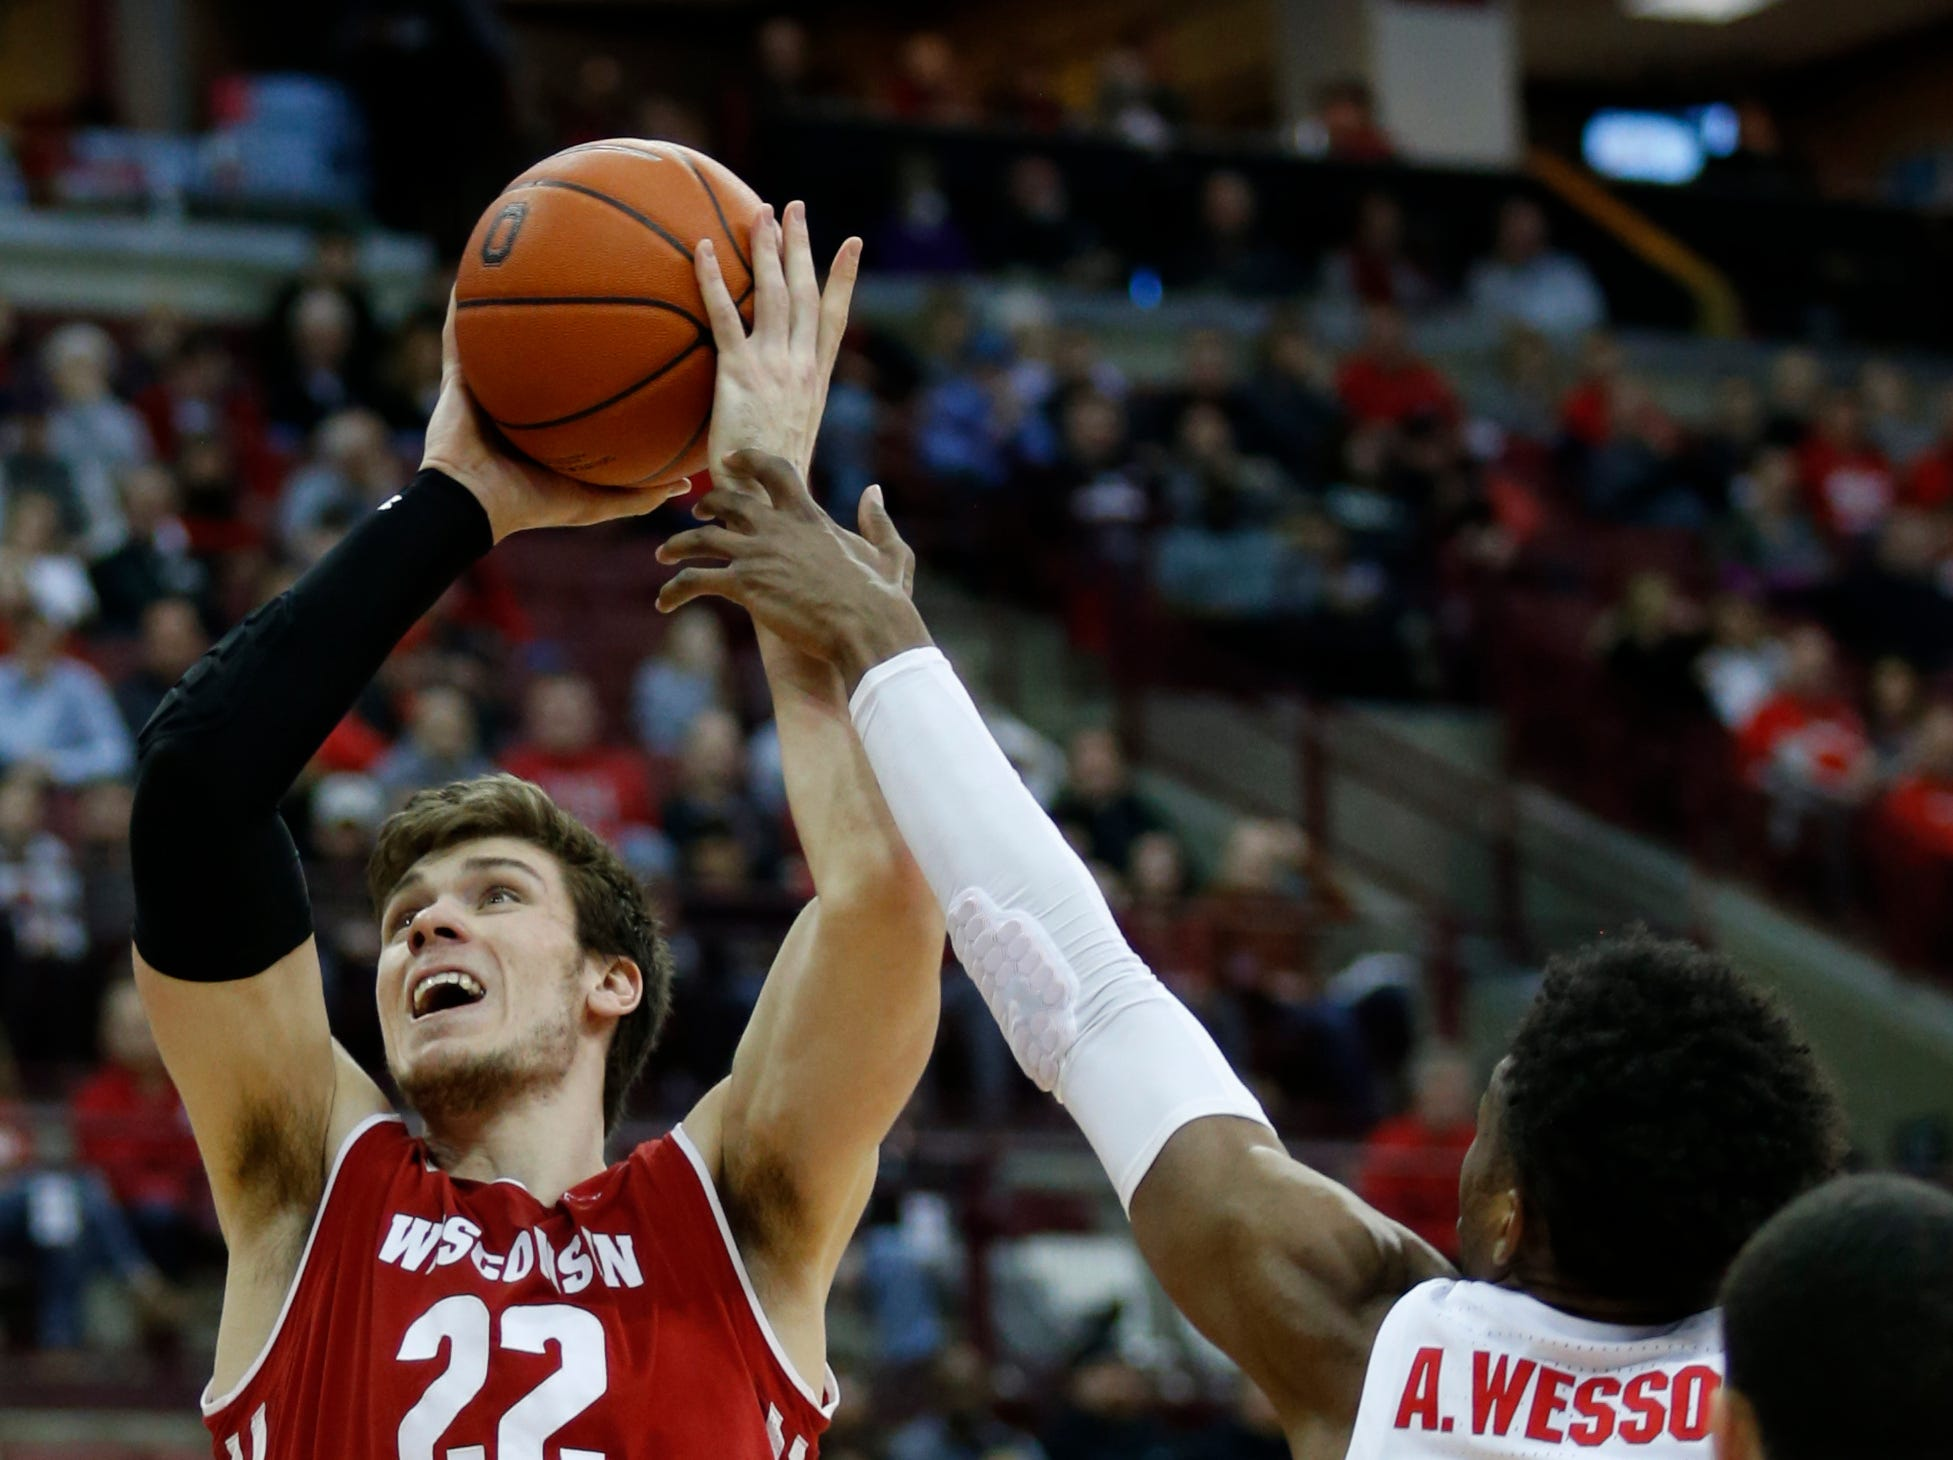 4. Wisconsin (22-9, 14-6): The Badgers locked up fourth place and a double-bye in the conference tournament by beating Iowa early in the week before closing the regular season with a win at Ohio State. The Badgers closed the season winning five of the last six games and now look to continue that momentum at the Big Ten tournament. With senior Ethan Happ looking to make one last push, the Badgers could find themselves hoisting a championship trophy. Last week: 4.